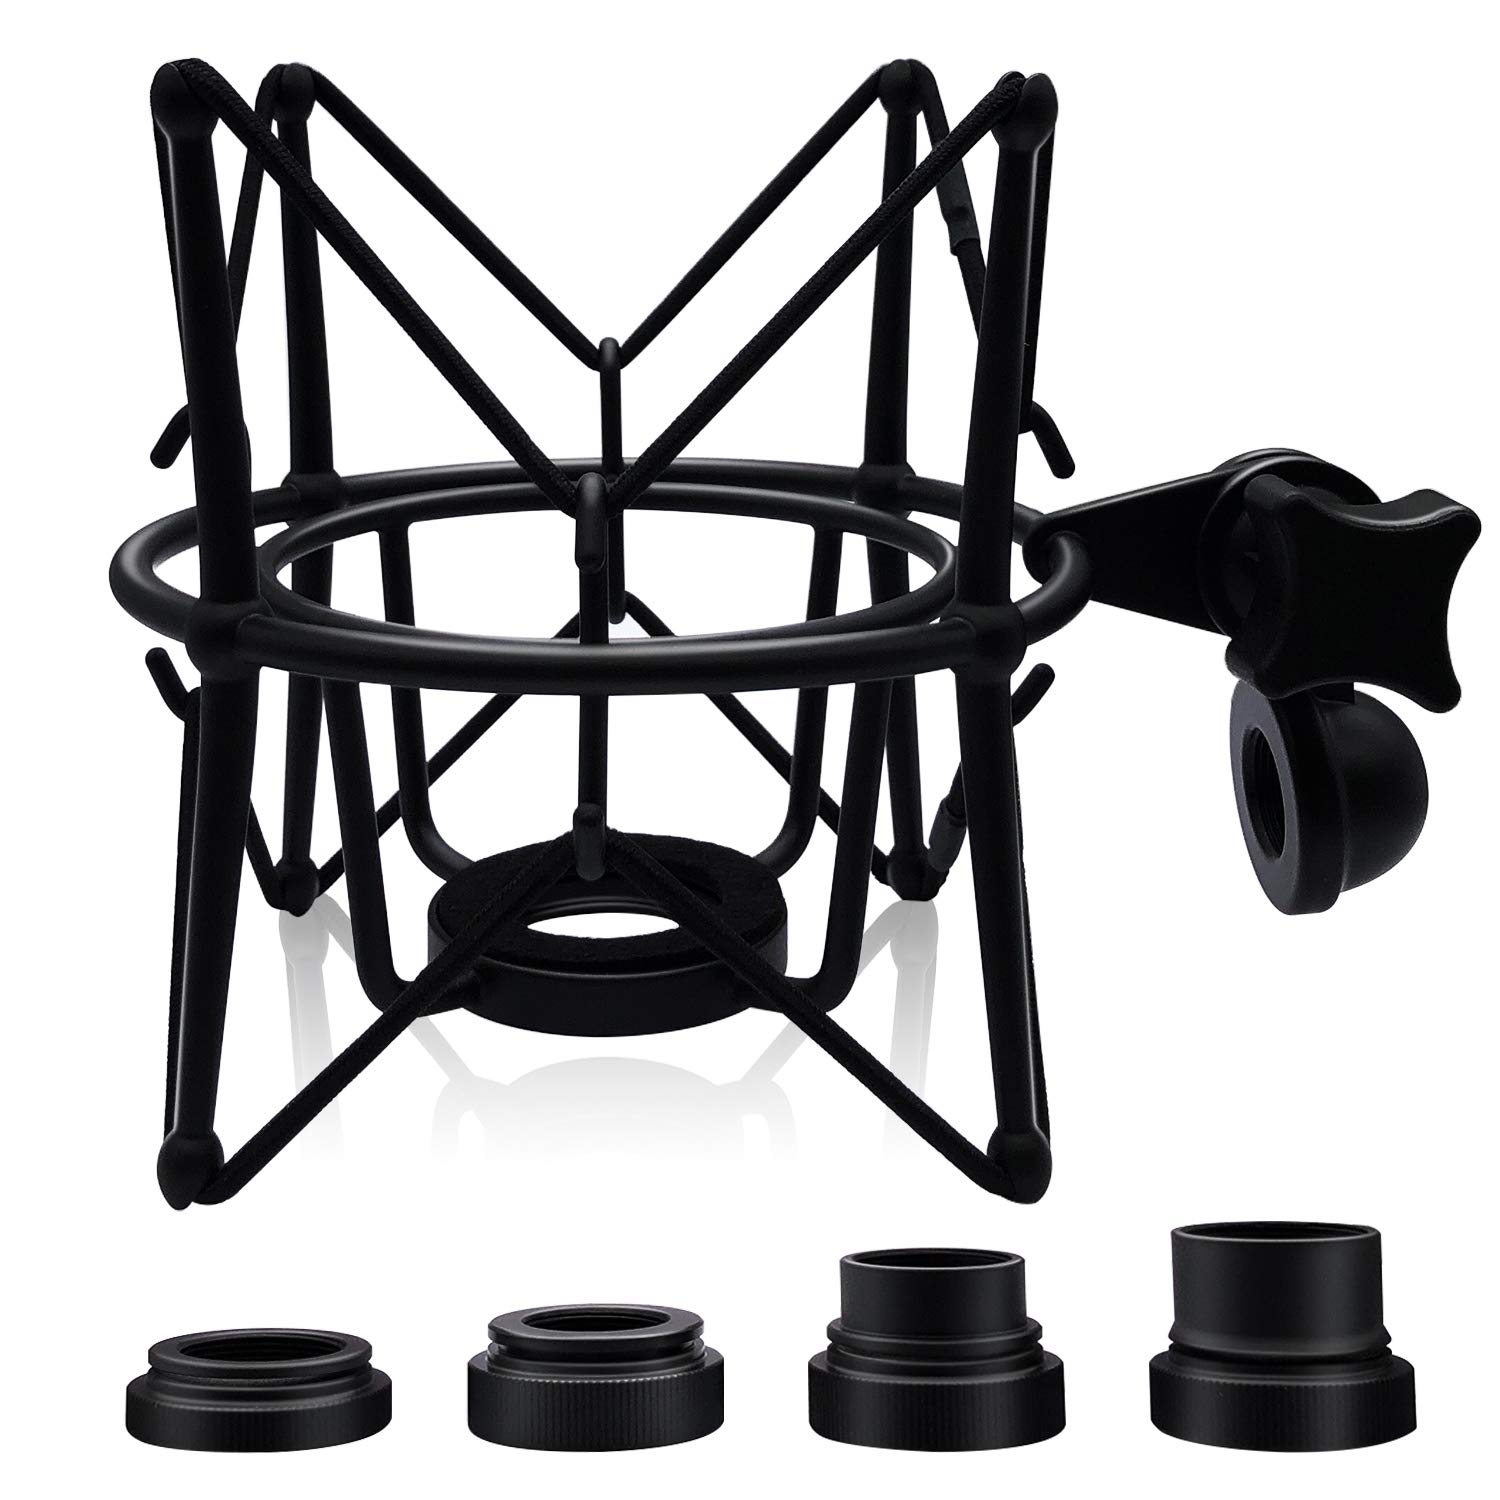 Boseen Microphone Shock Mount Mic Holder - Anti Vibration Spider Shockmount Compatible with Many Condenser Mics Like AT2020 MXL 770 MXL 990 Samson G Track Pro Rode Procaster NT1-A Neumann U87 etc.